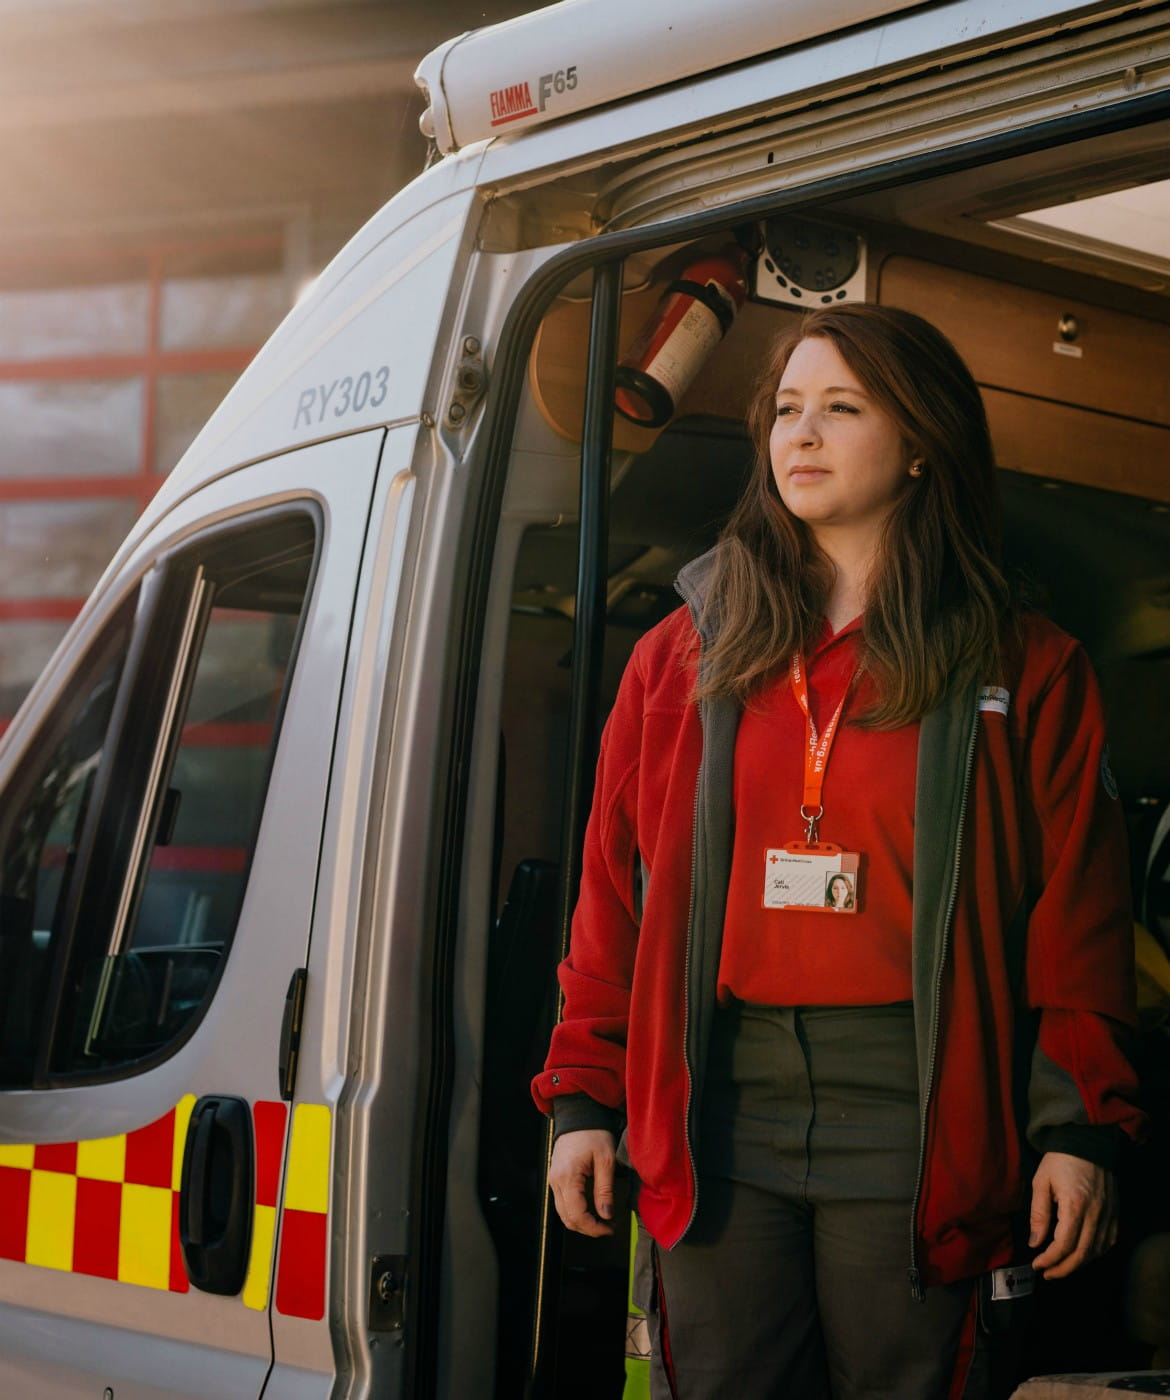 Red Cross Volunteer stands ready in Ambulance